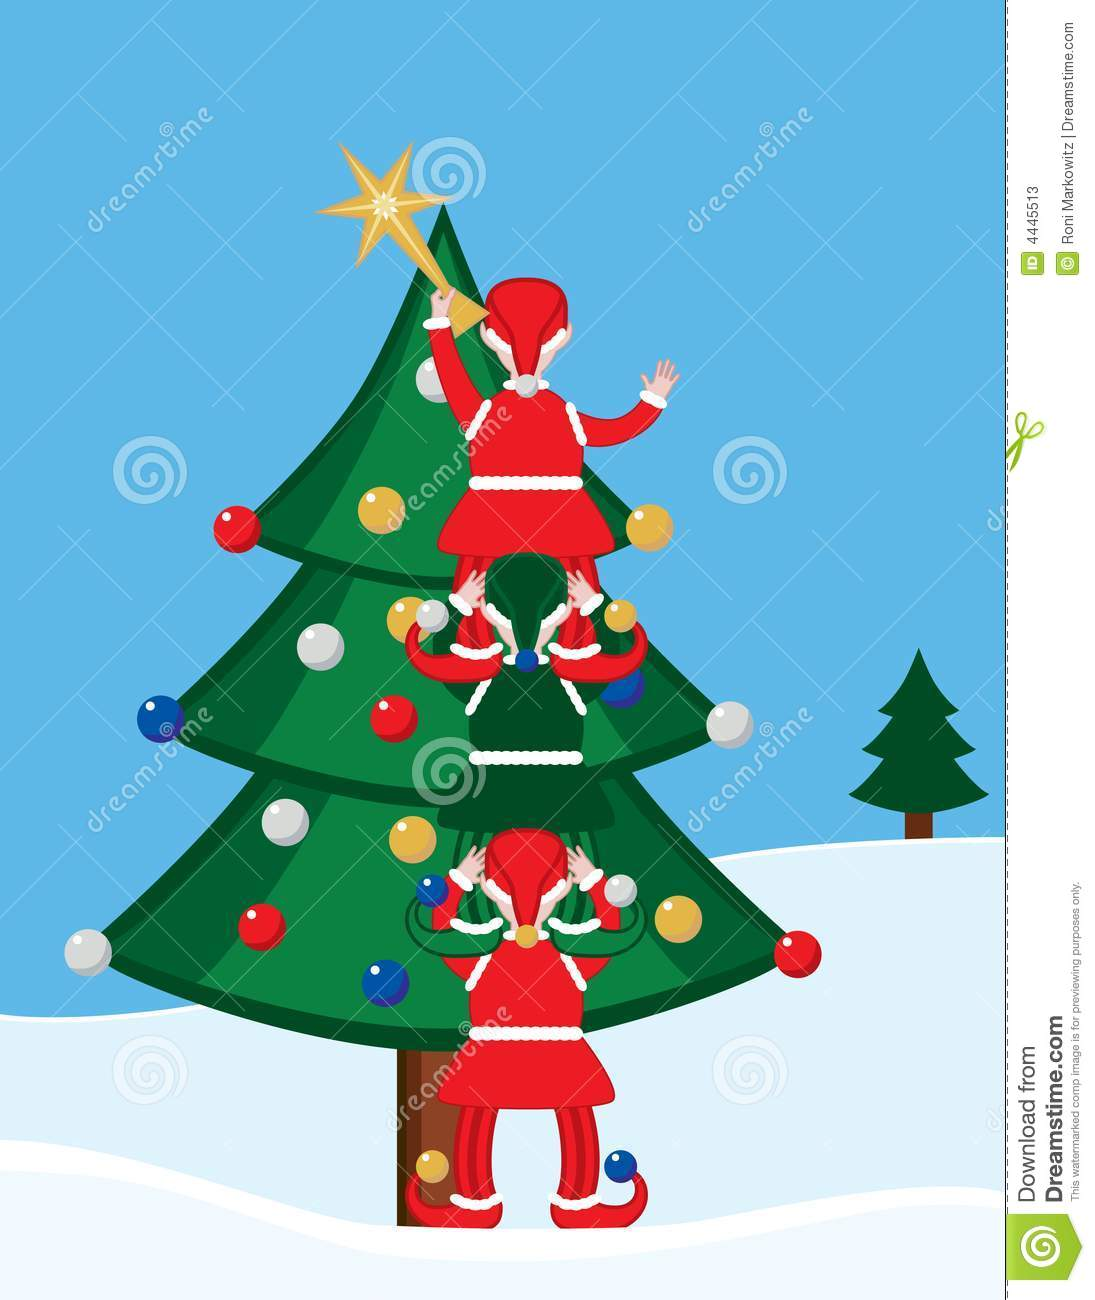 Elves And Christmas Tree Stock Photos Image 4445513